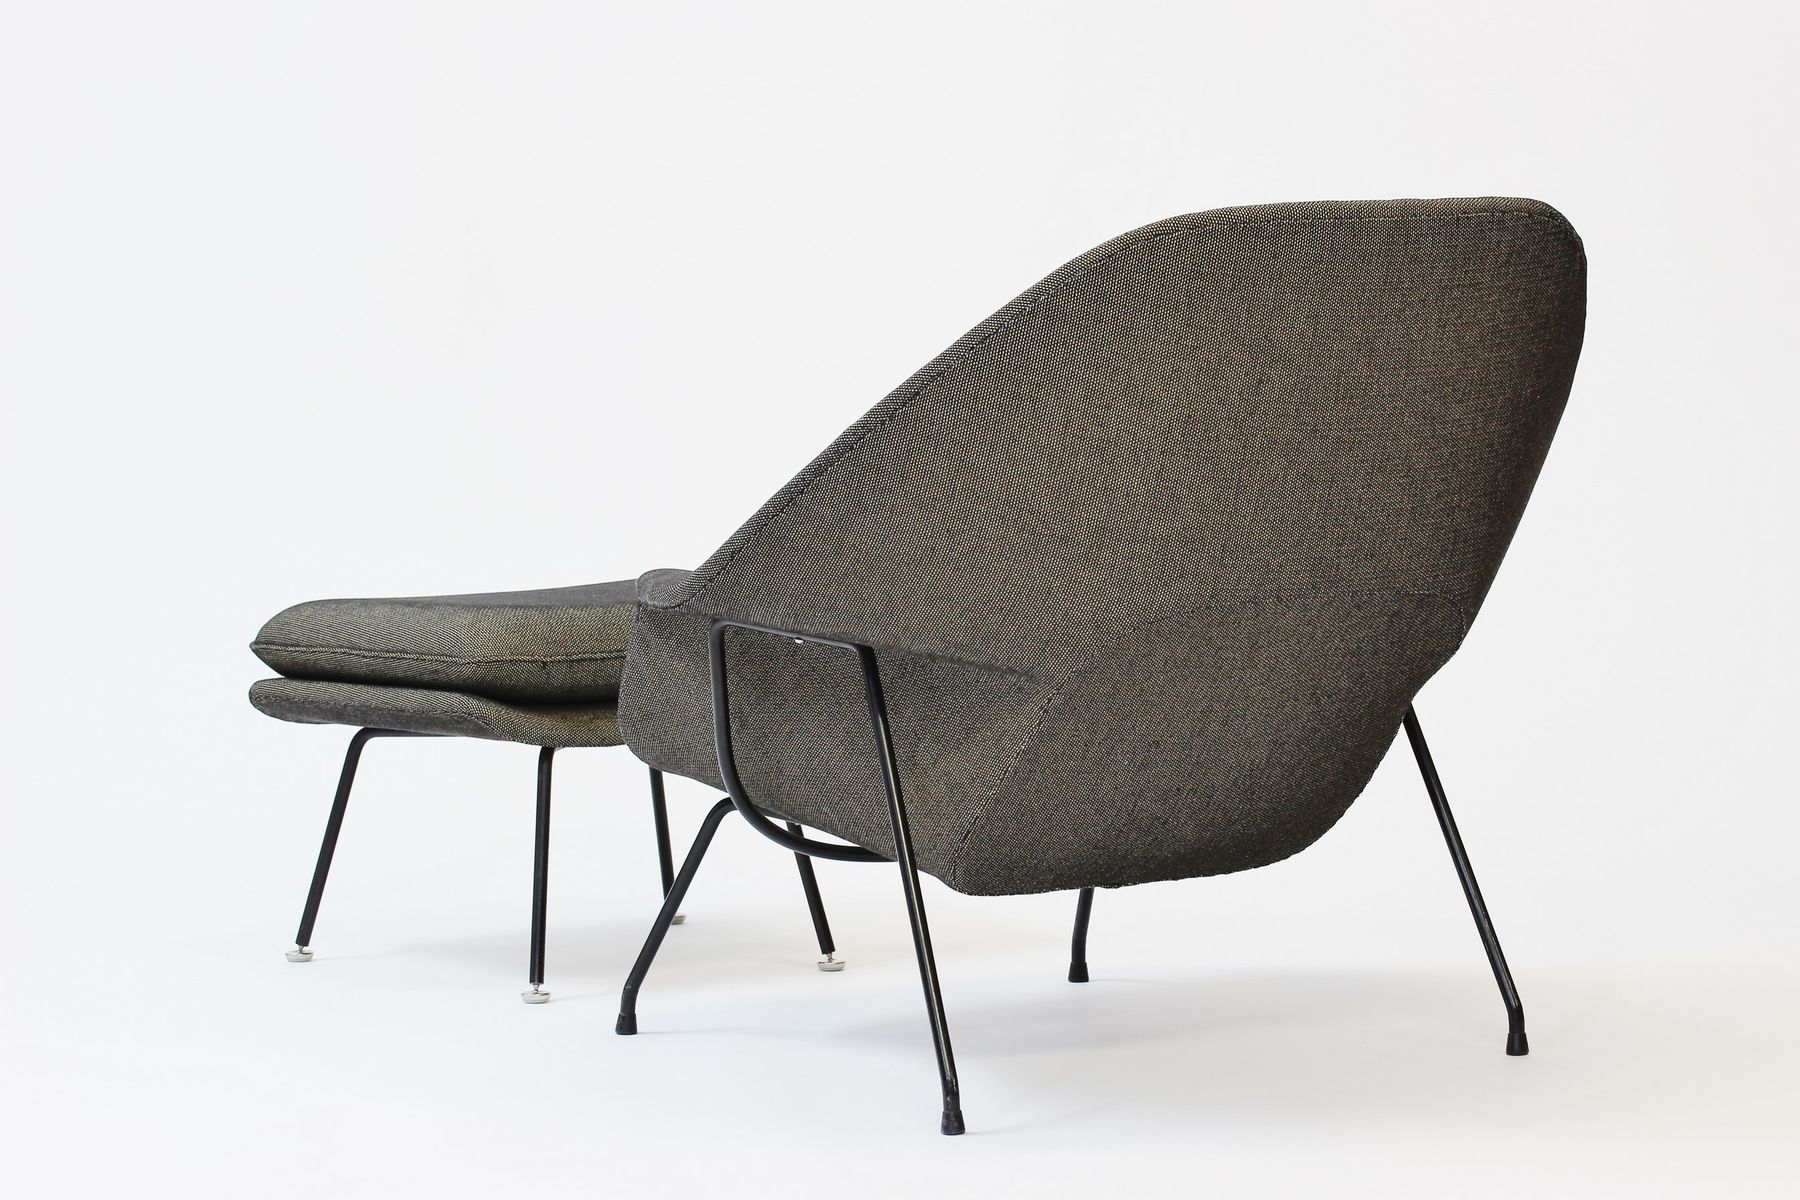 Womb chair and ottoman by eero saarinen 1960s for sale at pamono - Vintage womb chair for sale ...